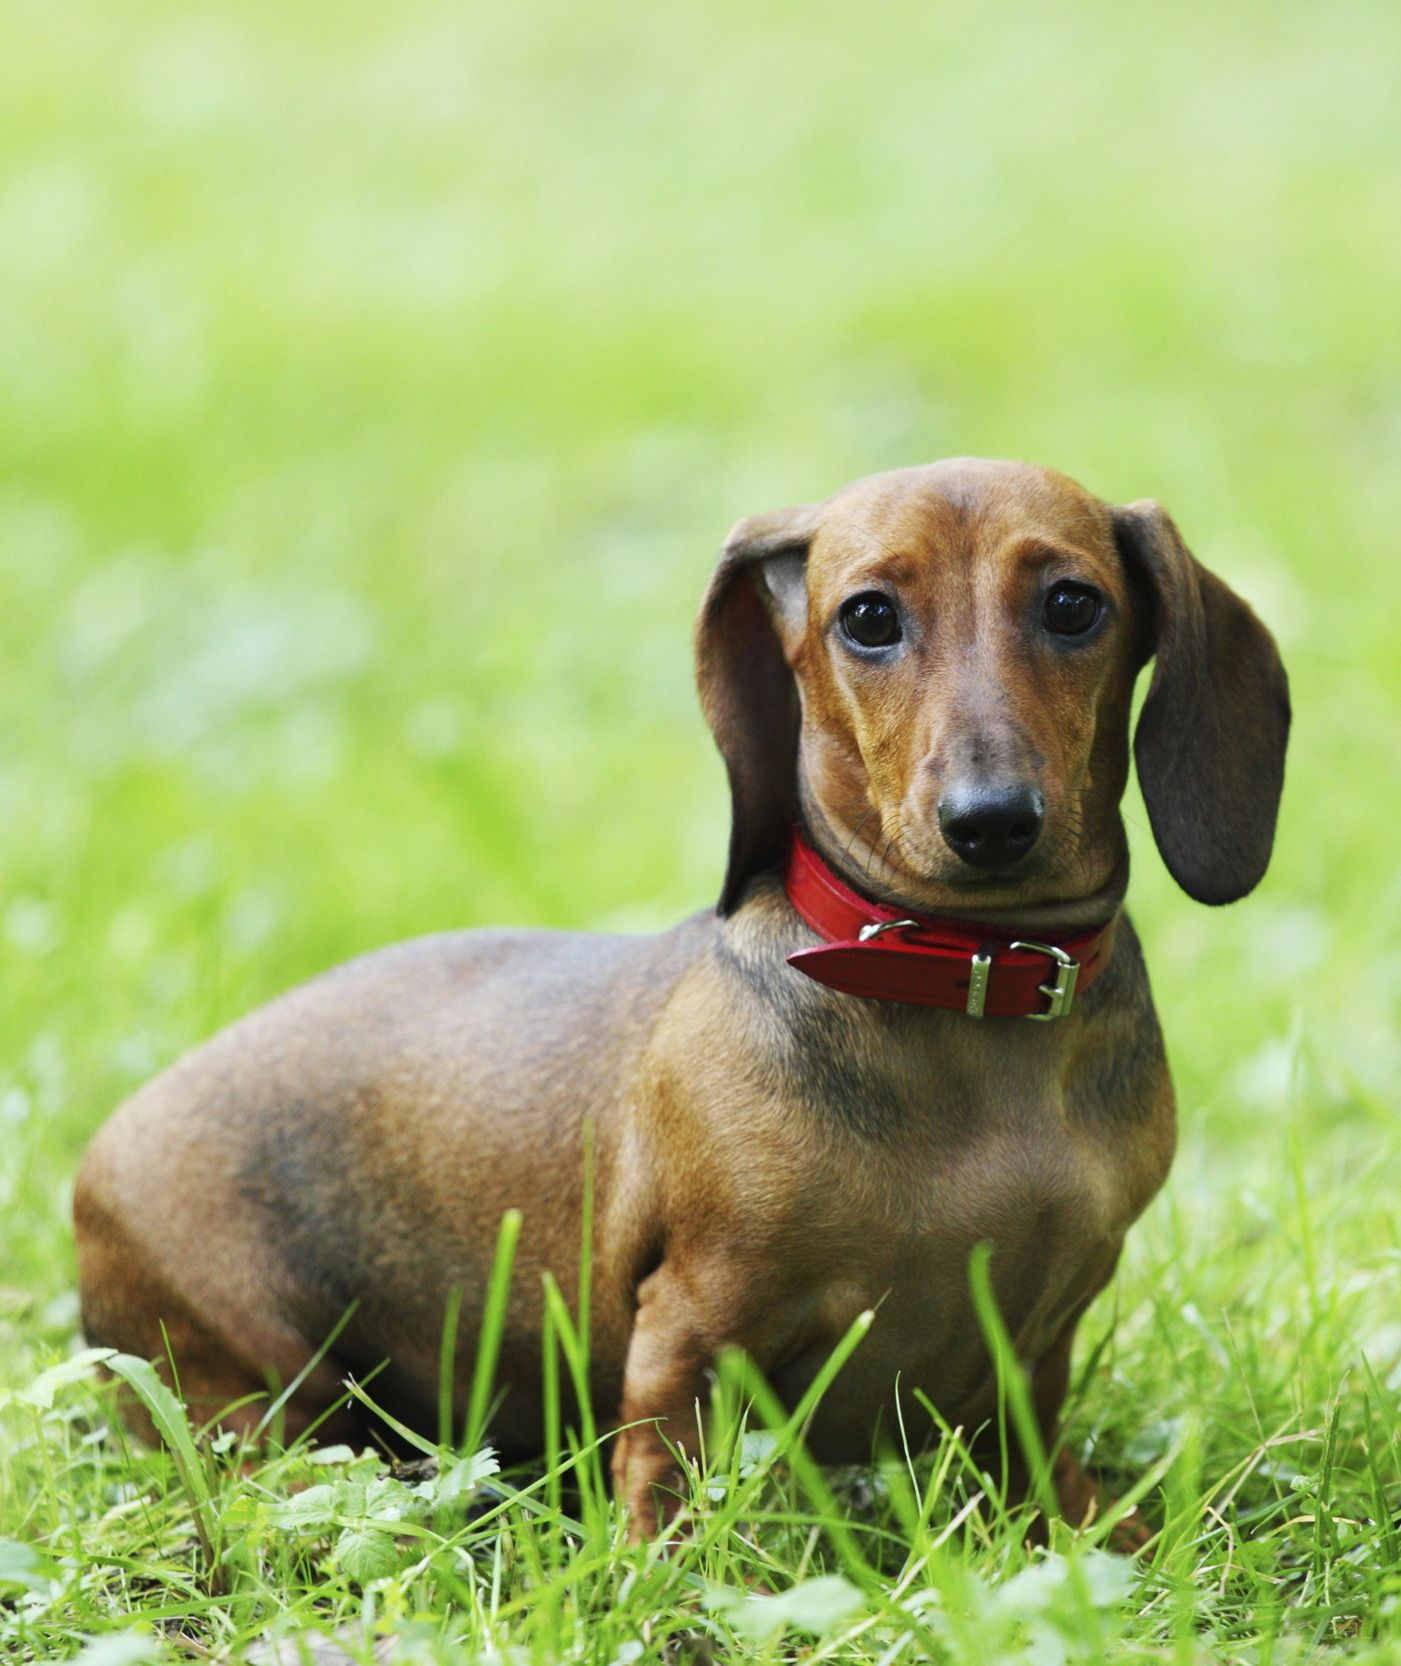 10 Dog Breeds Commonly Found In Animal Shelters Dog Breeds Dogs